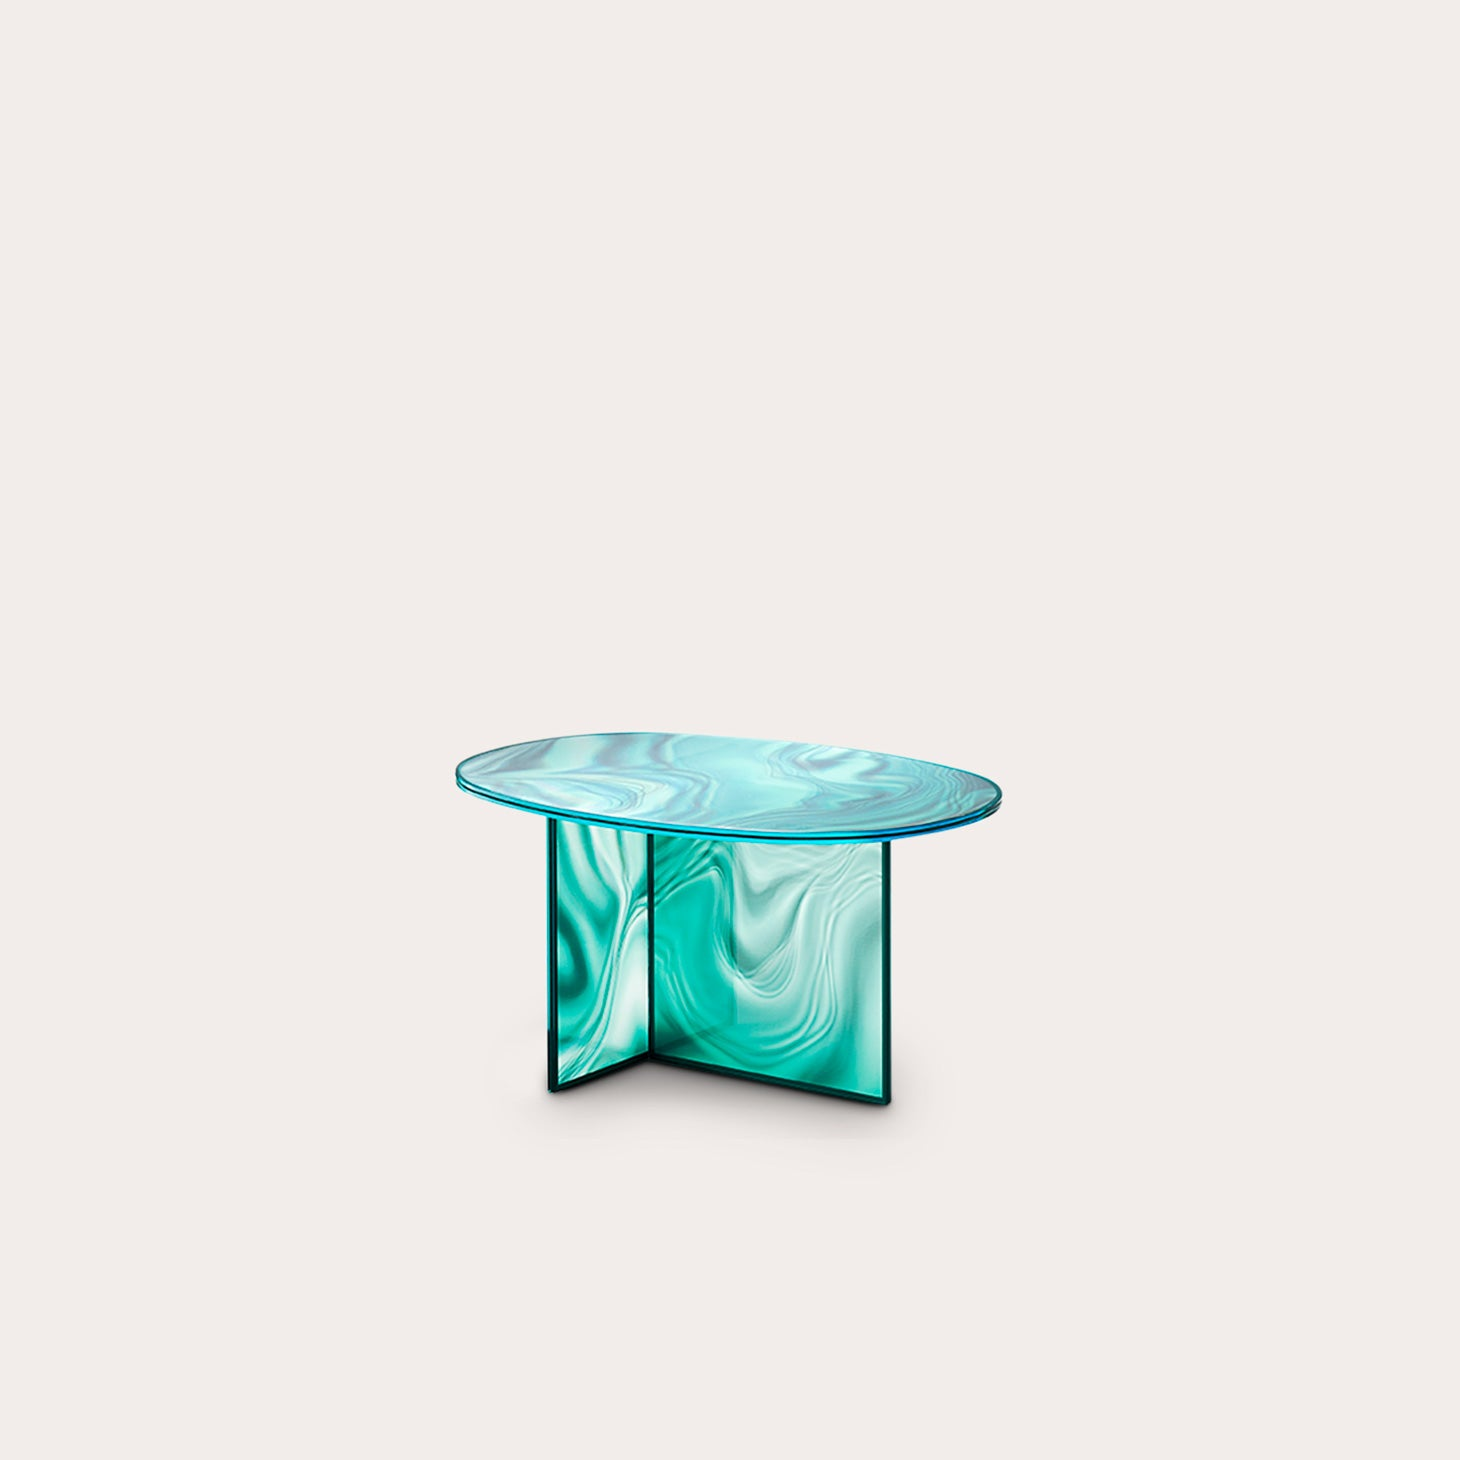 Wondrous Liquefy Coffee Table Coffee Tables By Patricia Urquiola Unemploymentrelief Wooden Chair Designs For Living Room Unemploymentrelieforg